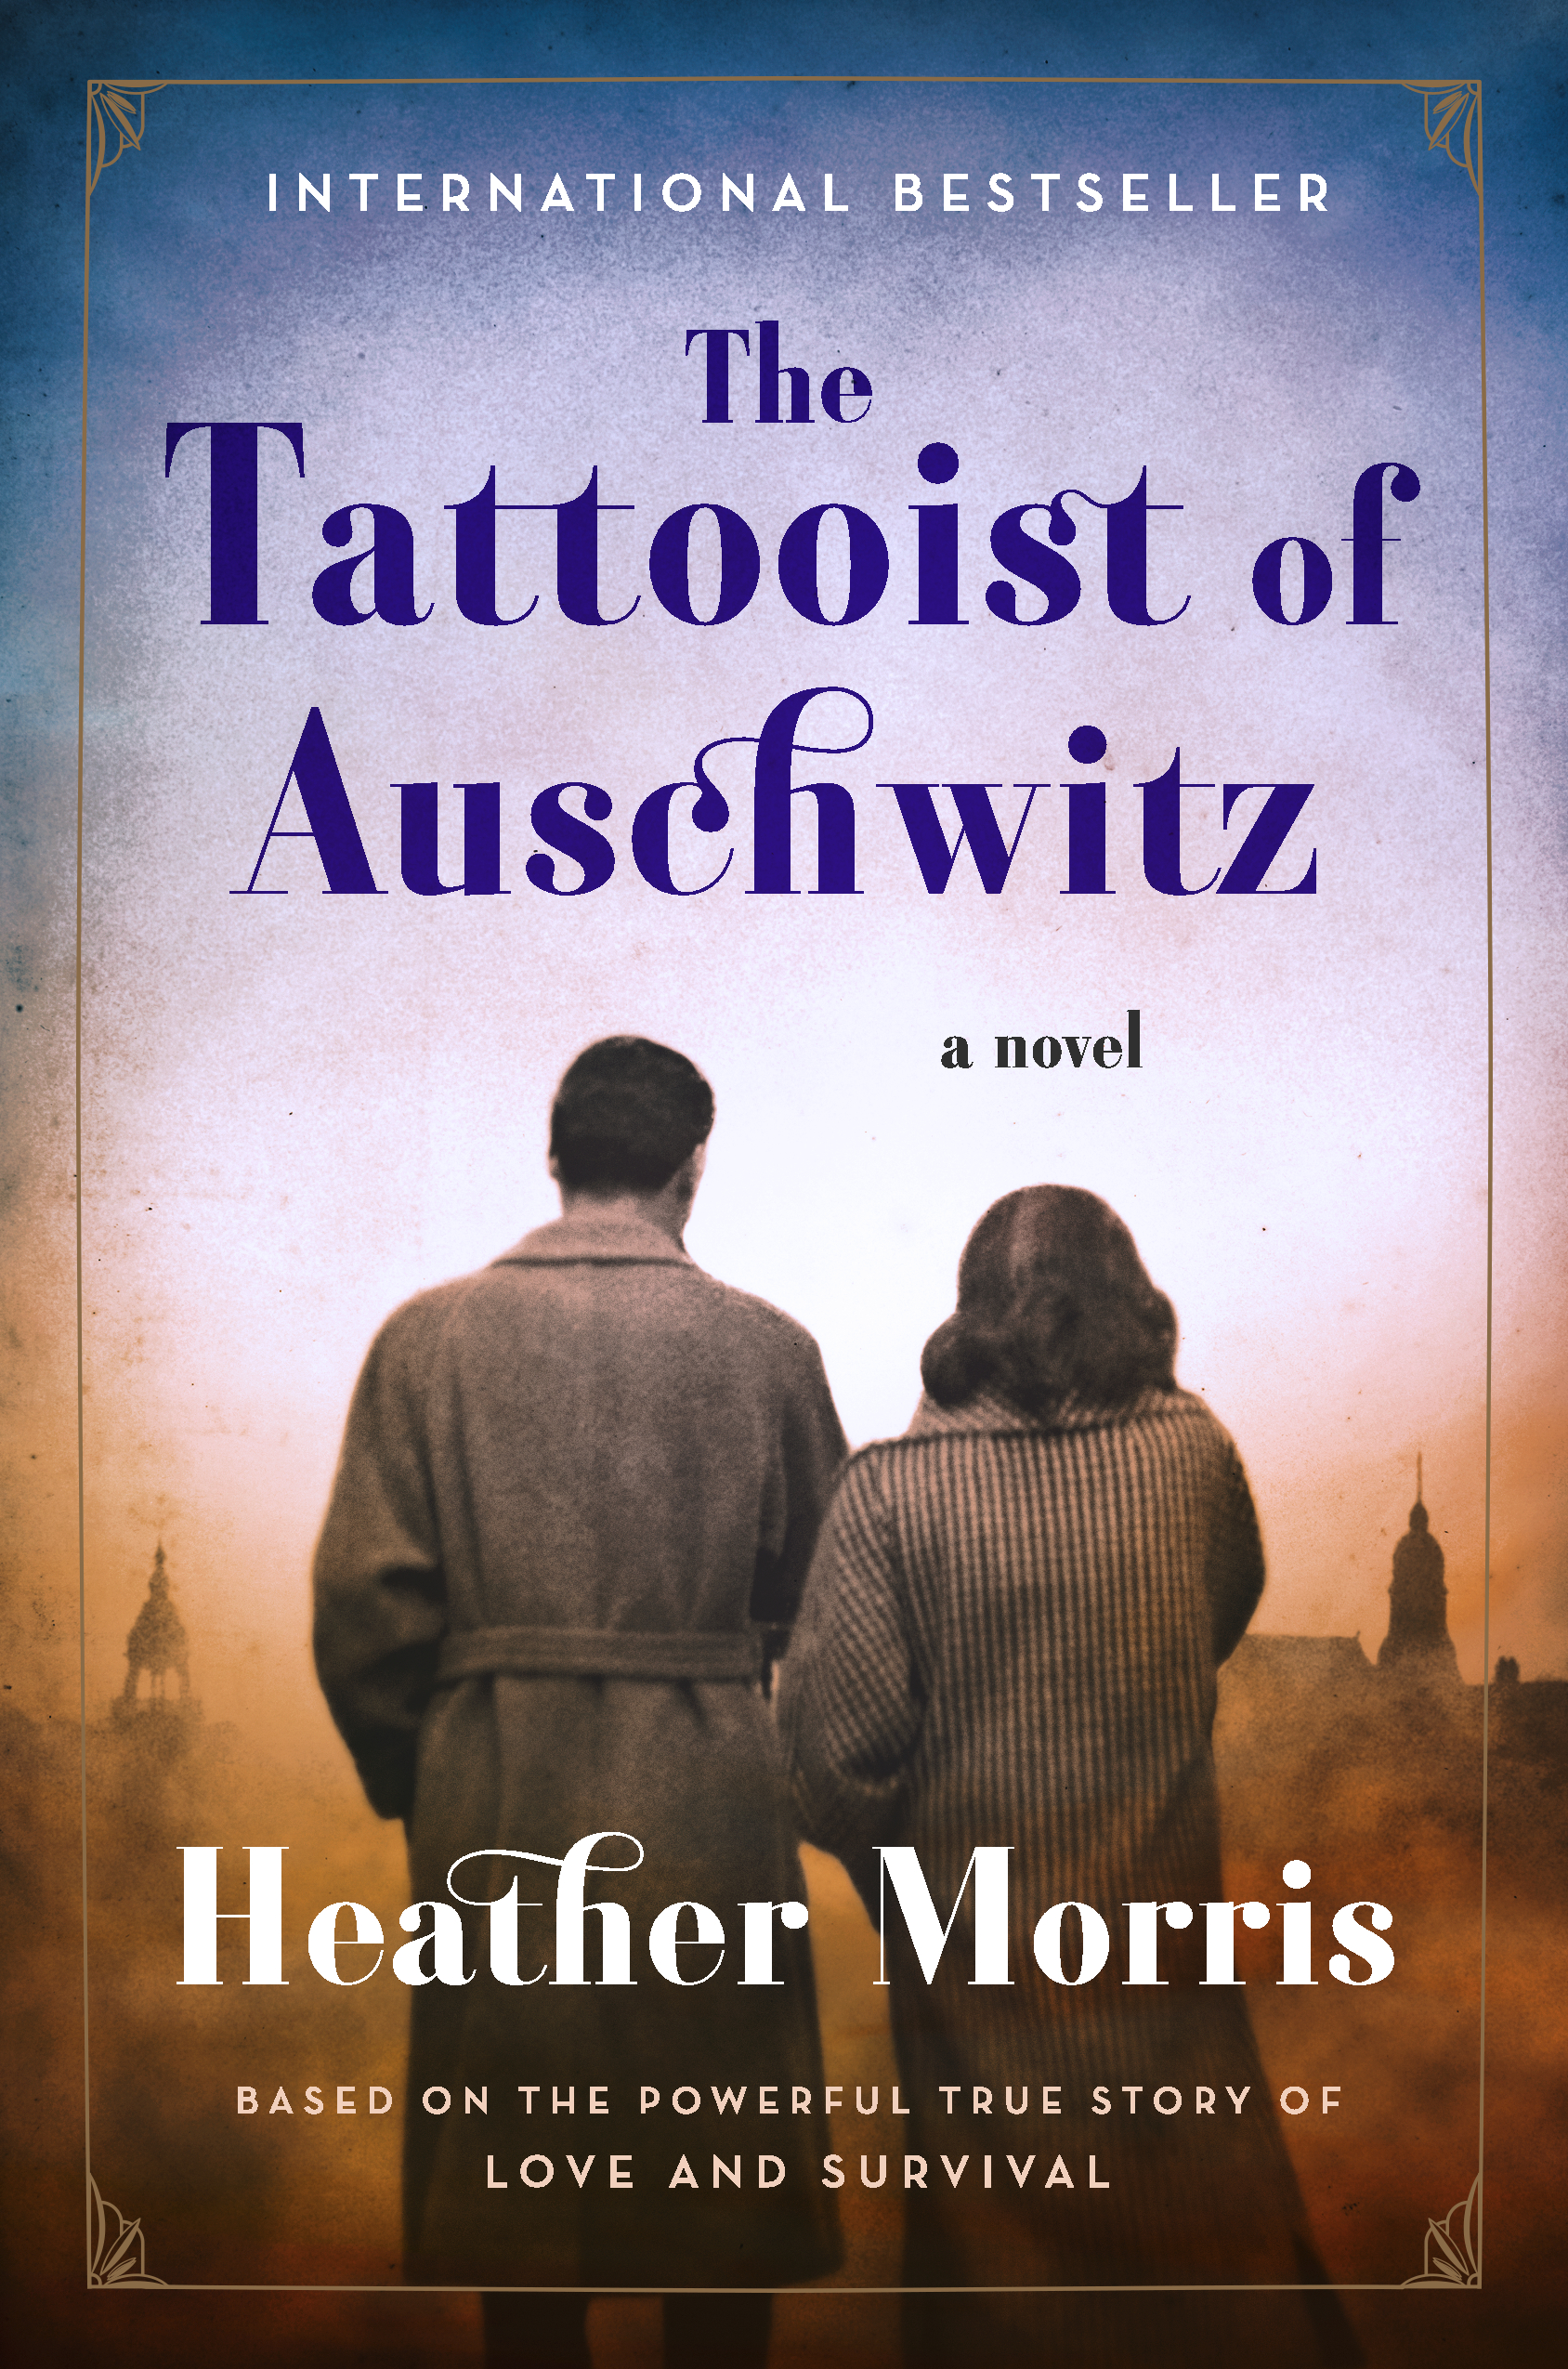 Libros De Lisa Kleypas Permanently Marked Heather Morris S The Tattooist Of